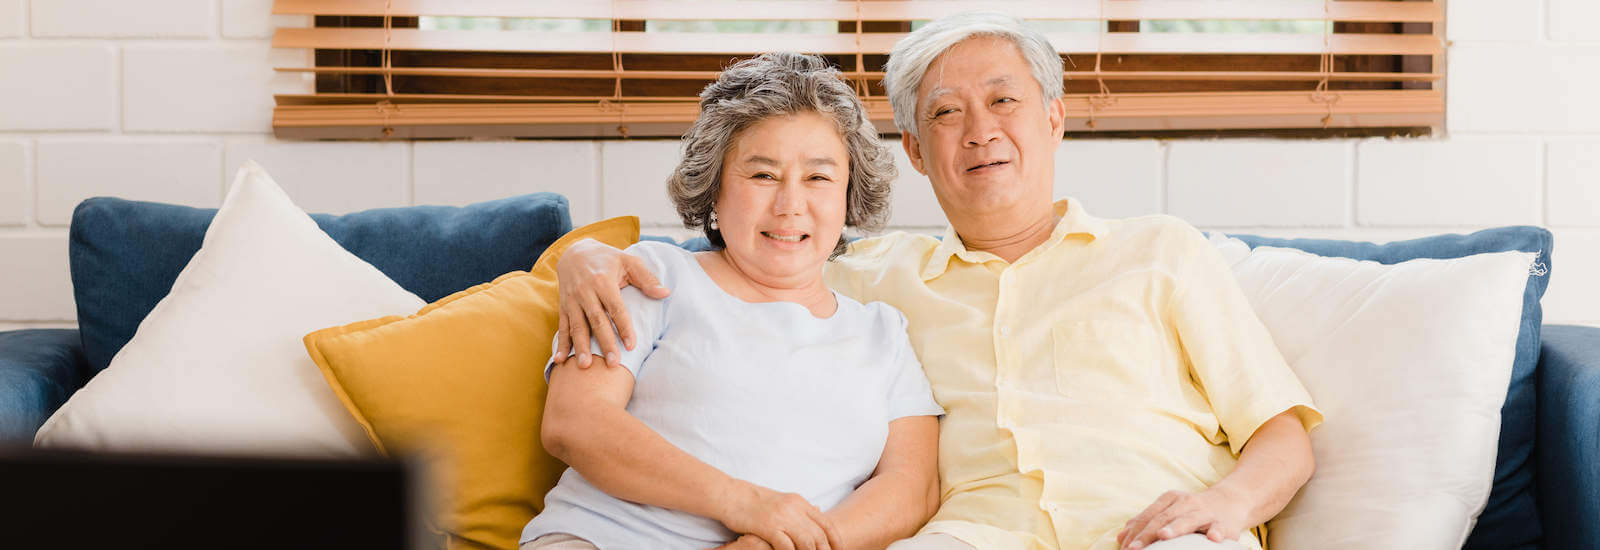 An Asian elderly couple smiling for the camera while sitting on a couch.